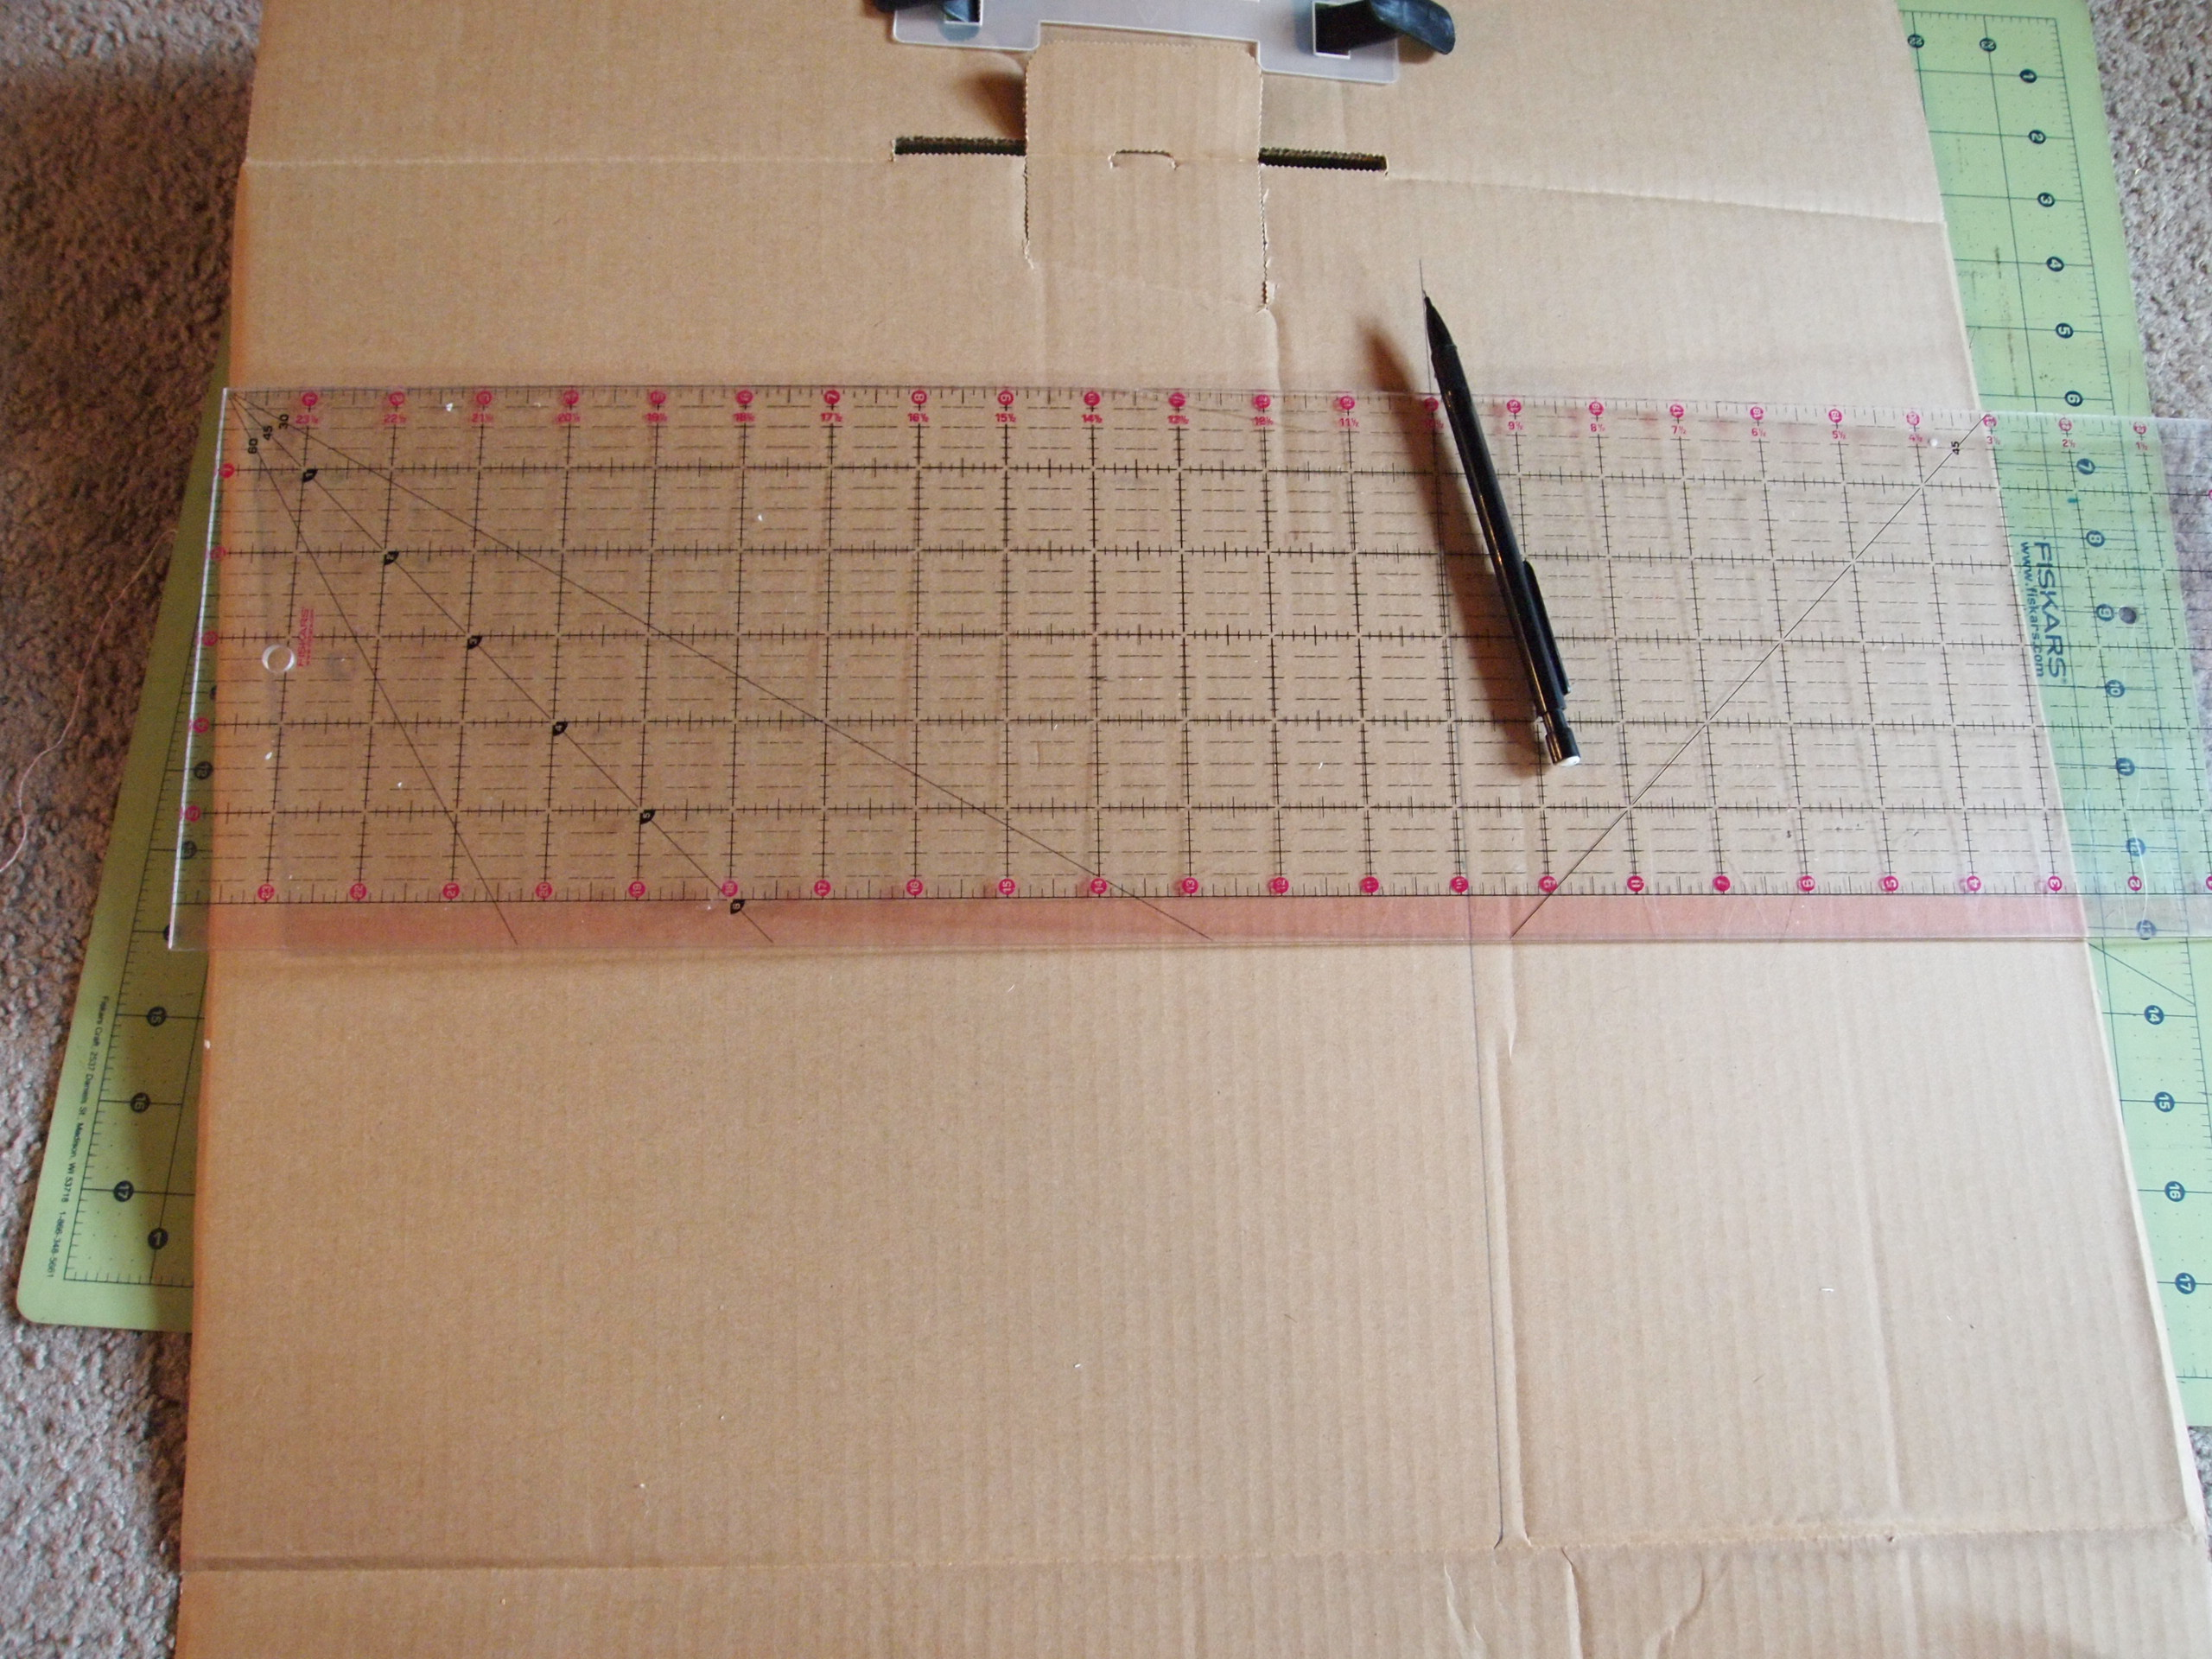 Picture of Cut Out Main Piece for HDTV Antenna